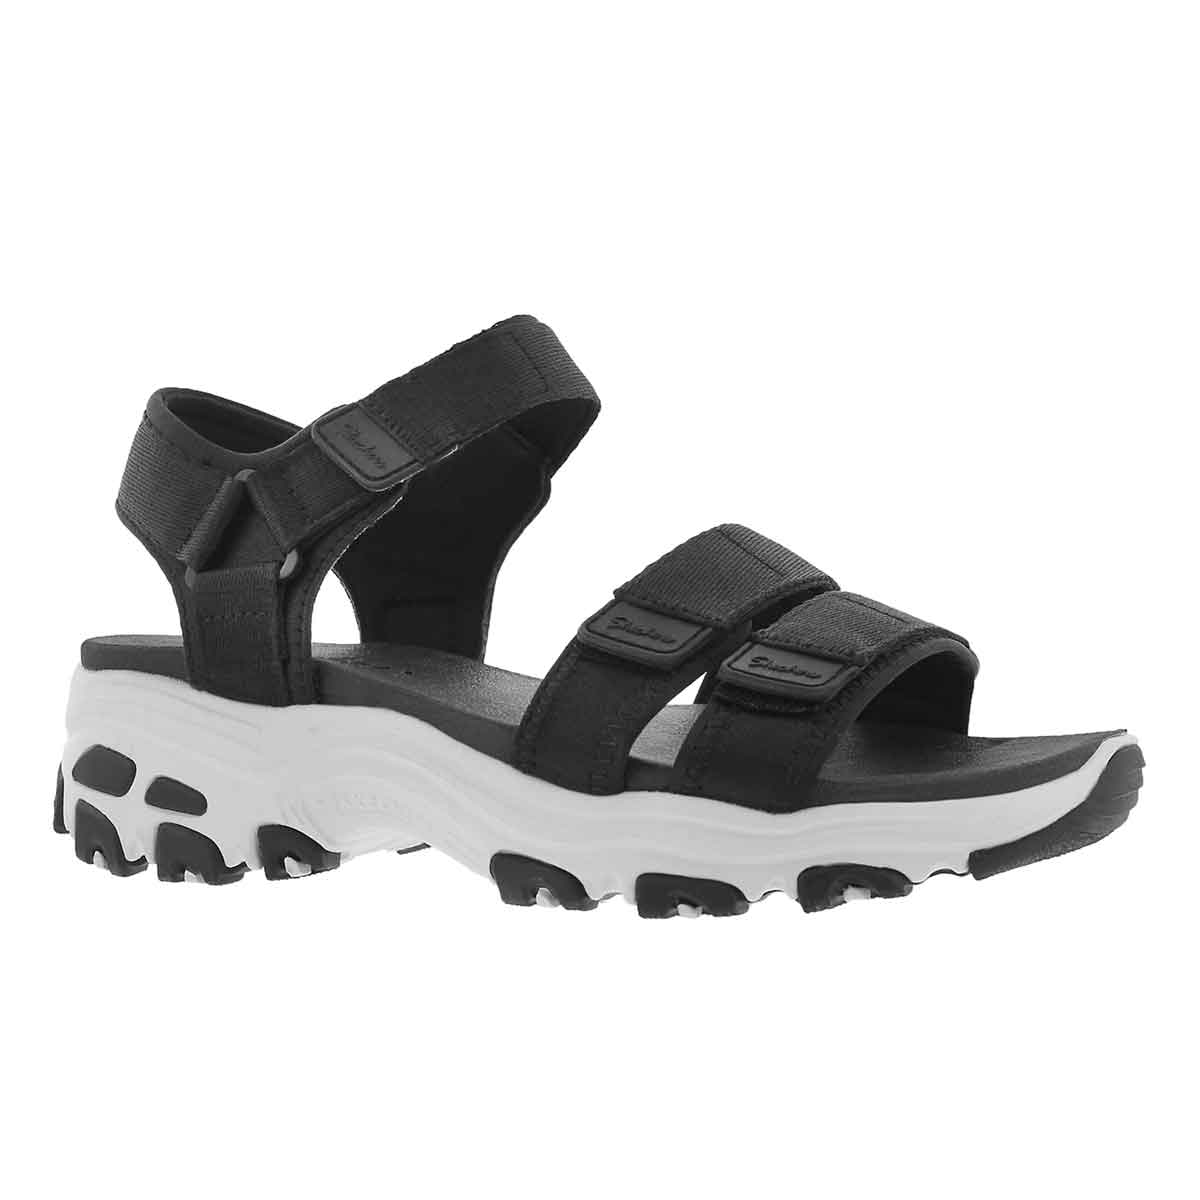 Women's D'LITES FRESH CATCH black sport sandals